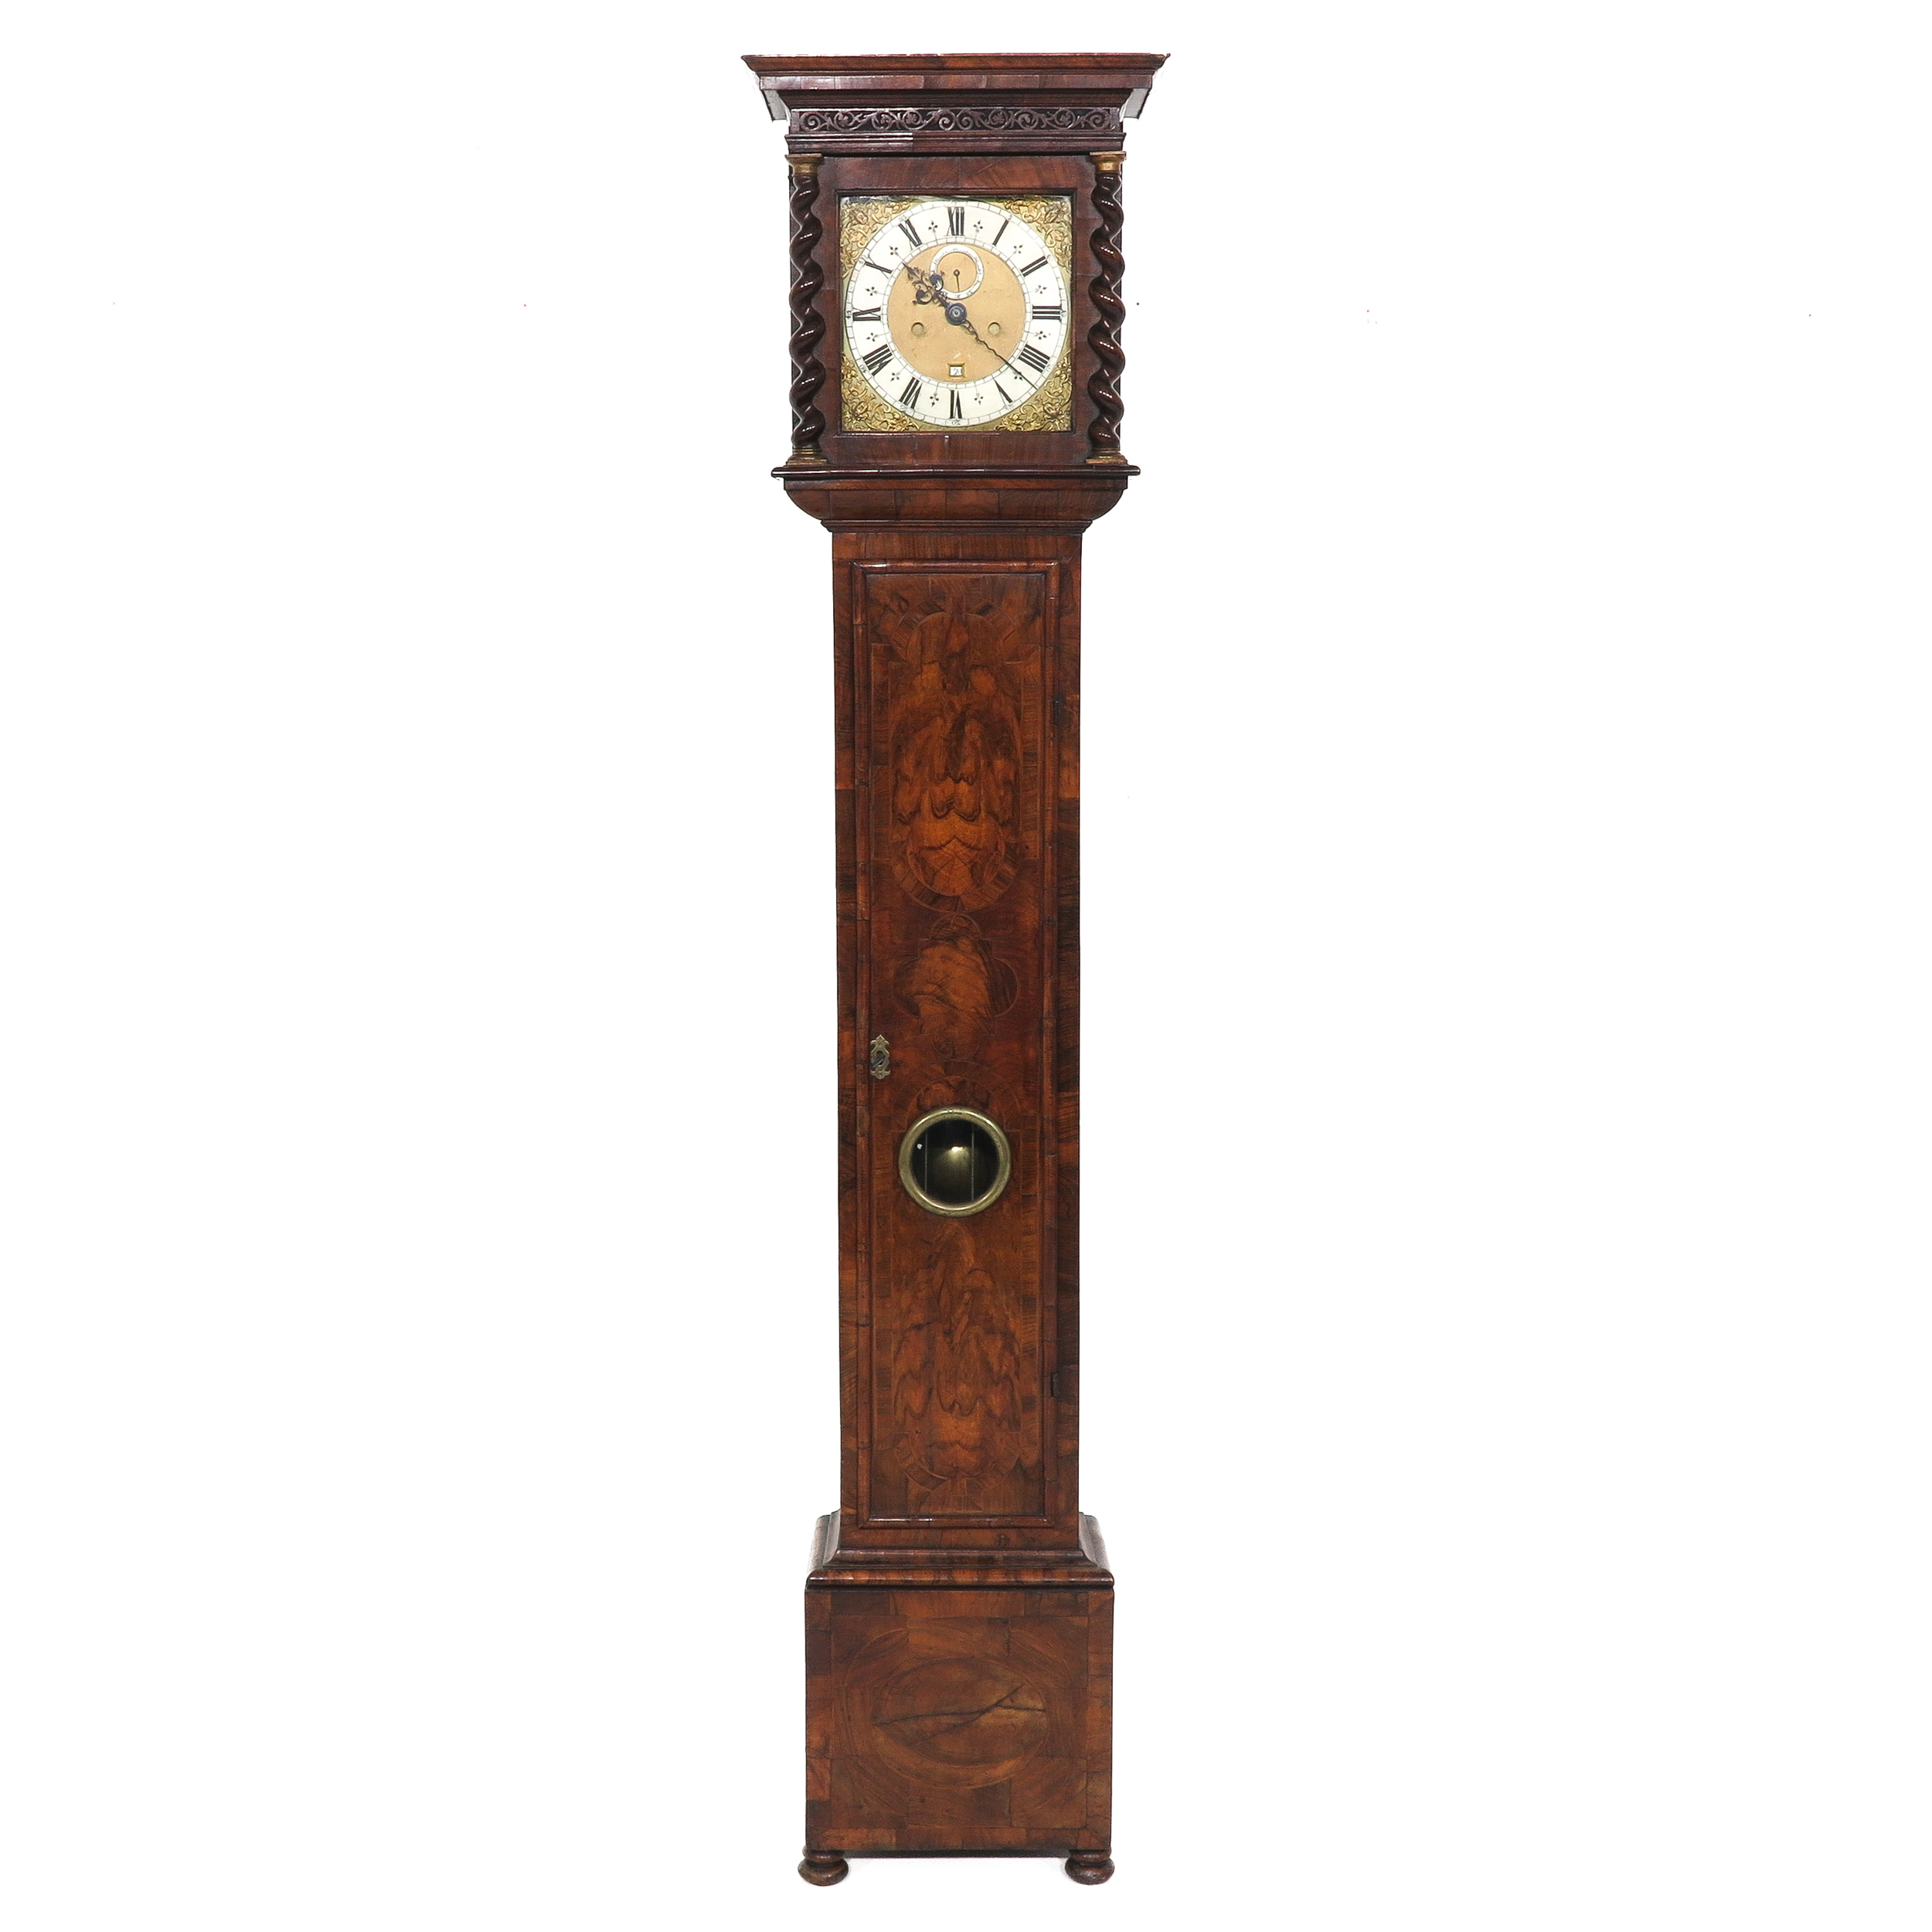 International Arts, Antique and Jewelry Auction